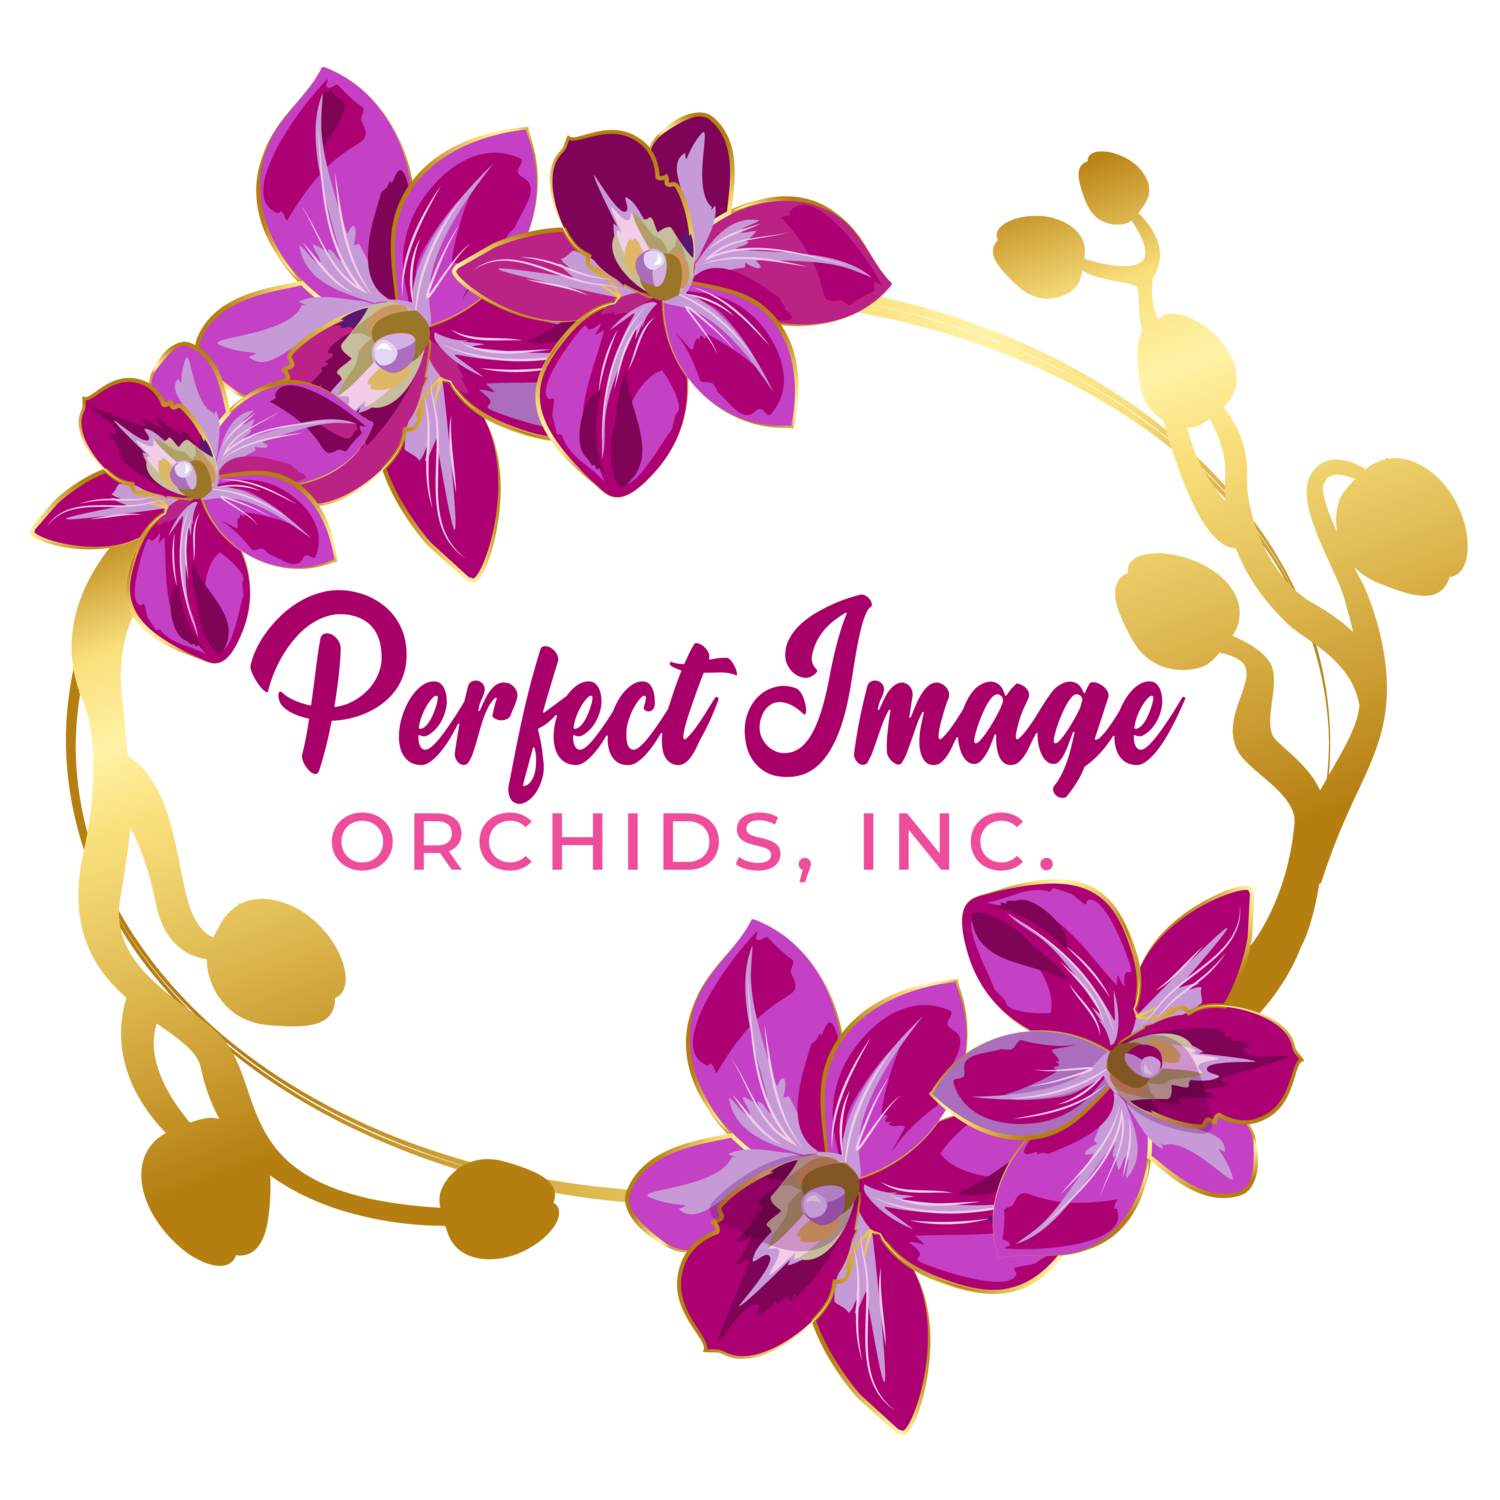 Perfect Image Orchids, Inc.